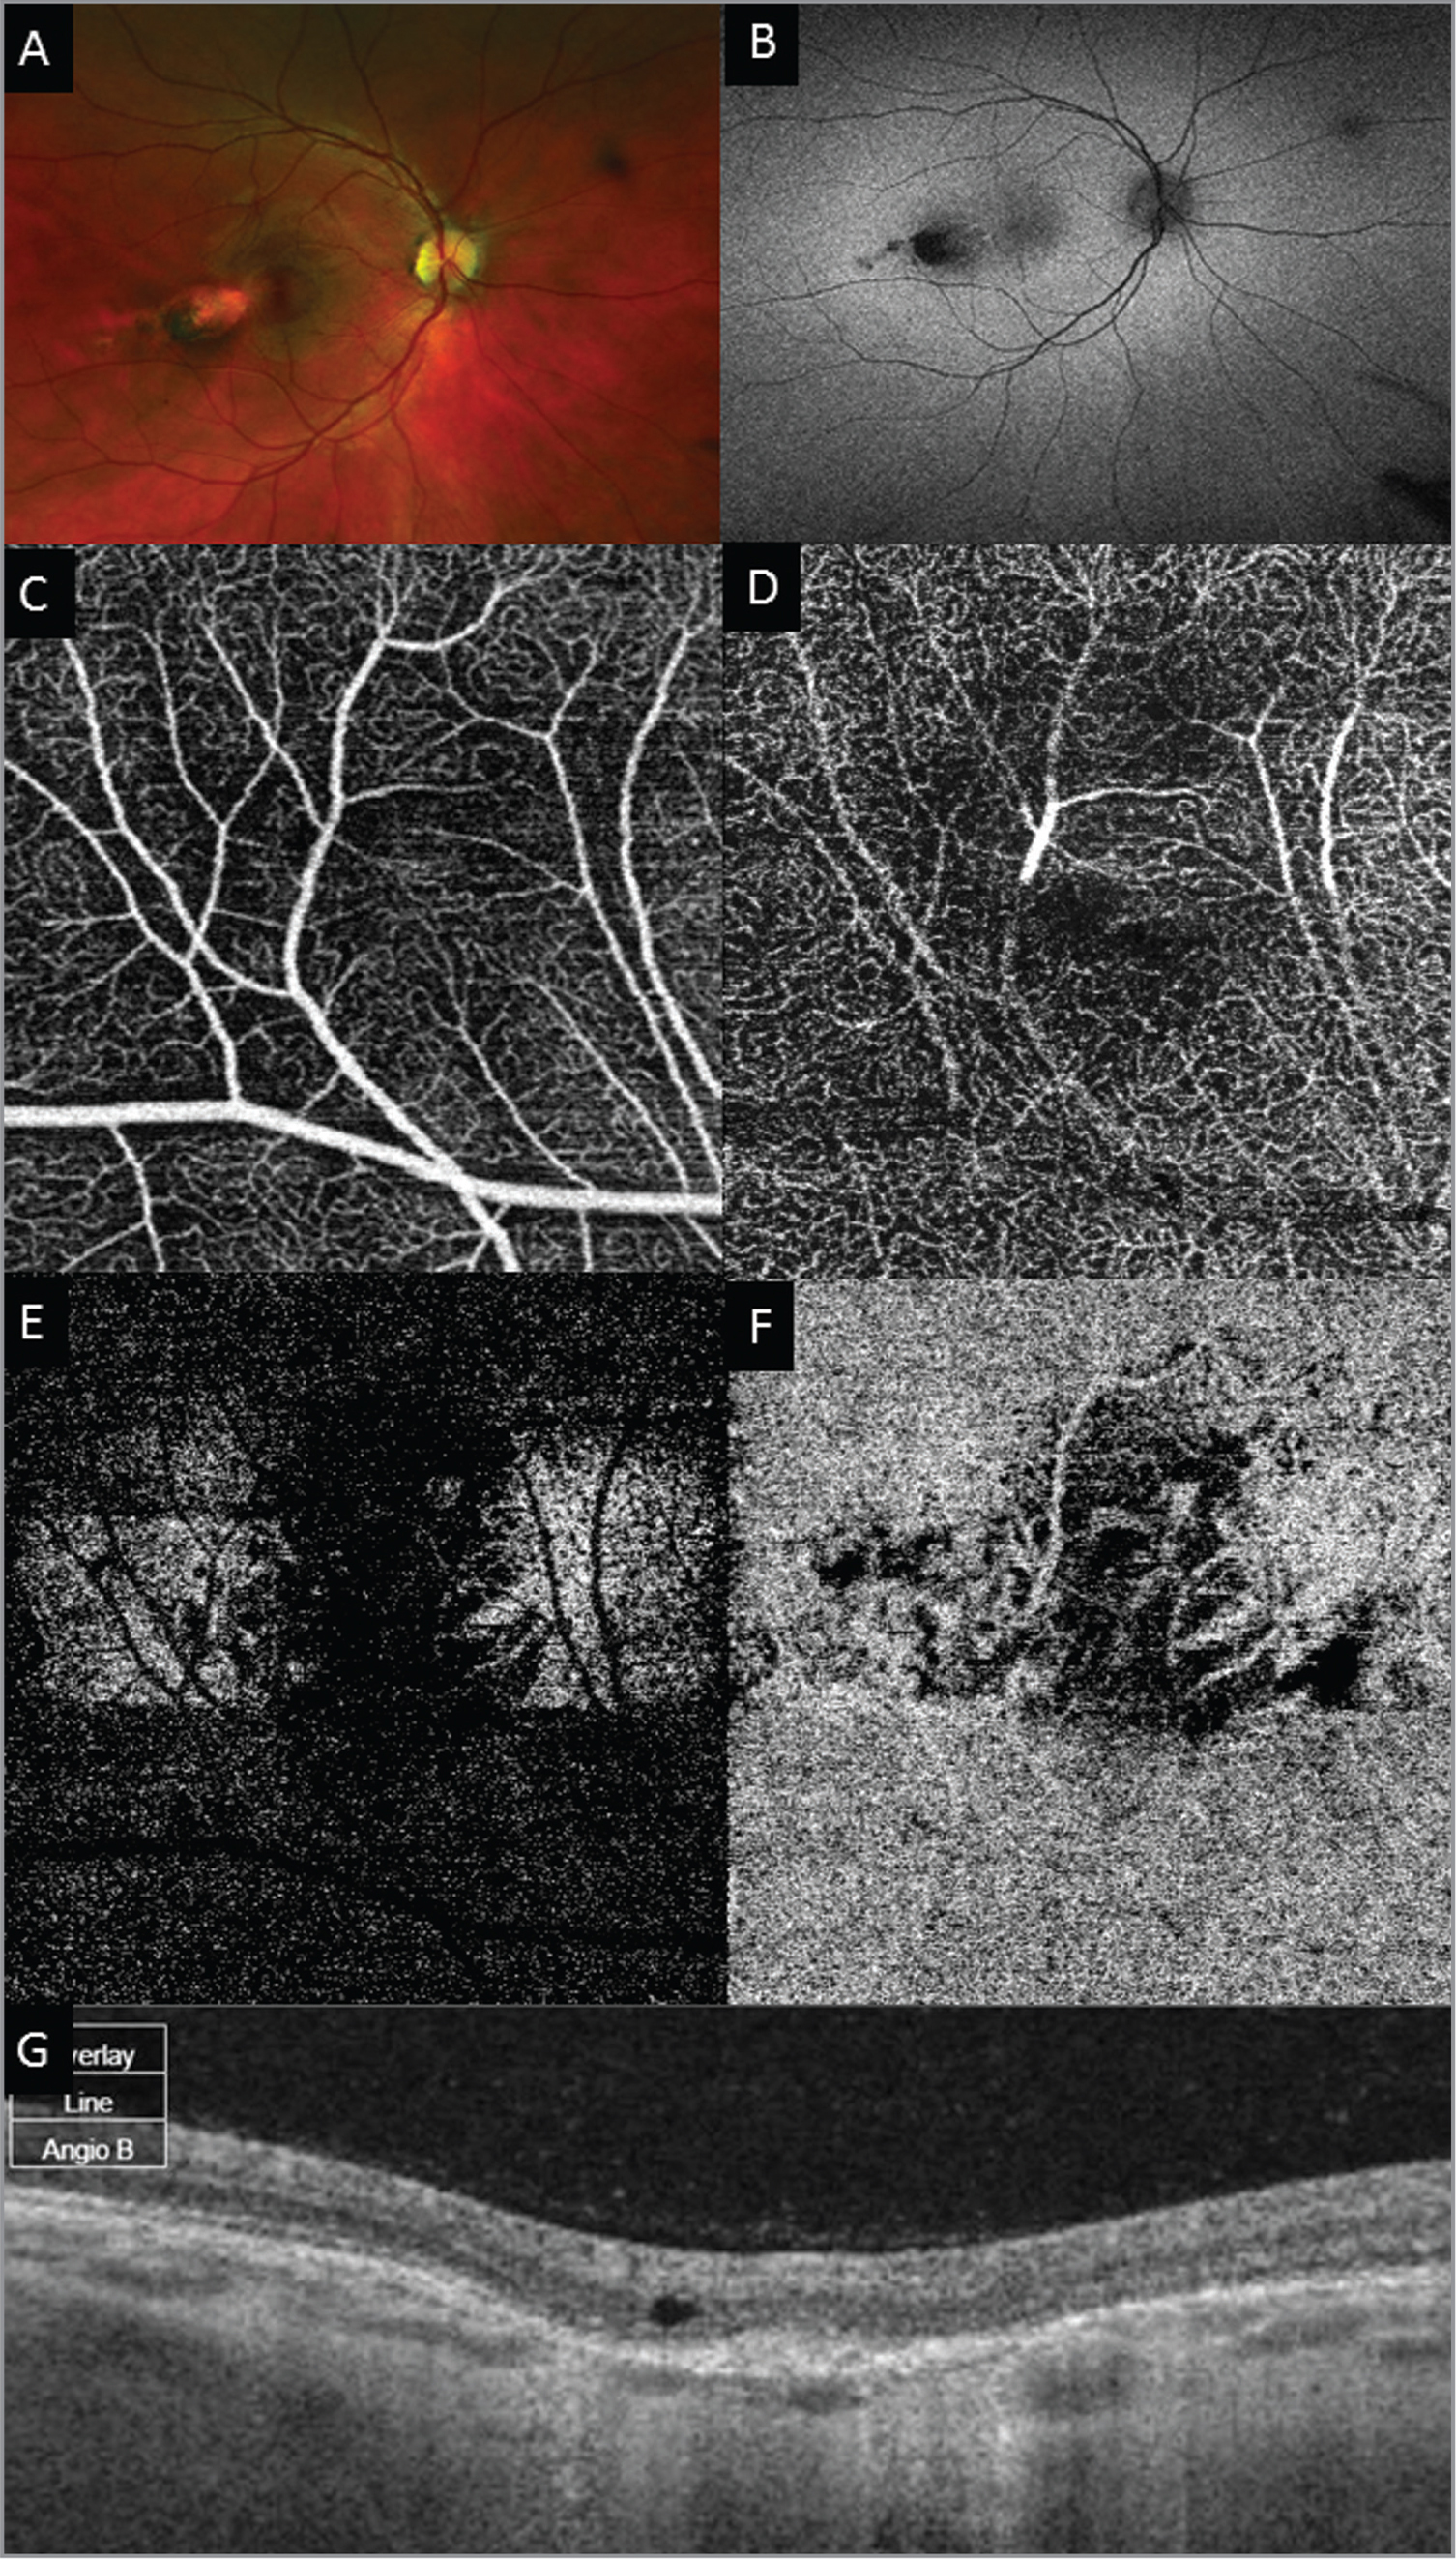 Imaging of torpedo lesion from Case 2. (A) Color fundus photo showing the classical appearance and location of torpedo maculopathy. (B) Fundus autofluorescence of torpedo lesion demonstrating hypoautofluorescence consistent with retinal pigment epithelium loss. (C) Optical coherence tomography angiography (OCTA) segment; superficial plexus of inner retina showing fine vessel loss at the site of the lesion. (D) OCTA segment; deep plexus of inner retina showing fine vessel loss at the site of the lesion. (E) OCTA segment; outer retina demonstrating visibility of the larger choroidal vessels at lesion site. (F) OCTA segment; choriocapillaris demonstrating visibility of the larger choroidal vessels at lesion site. (G) OCT of torpedo lesion.